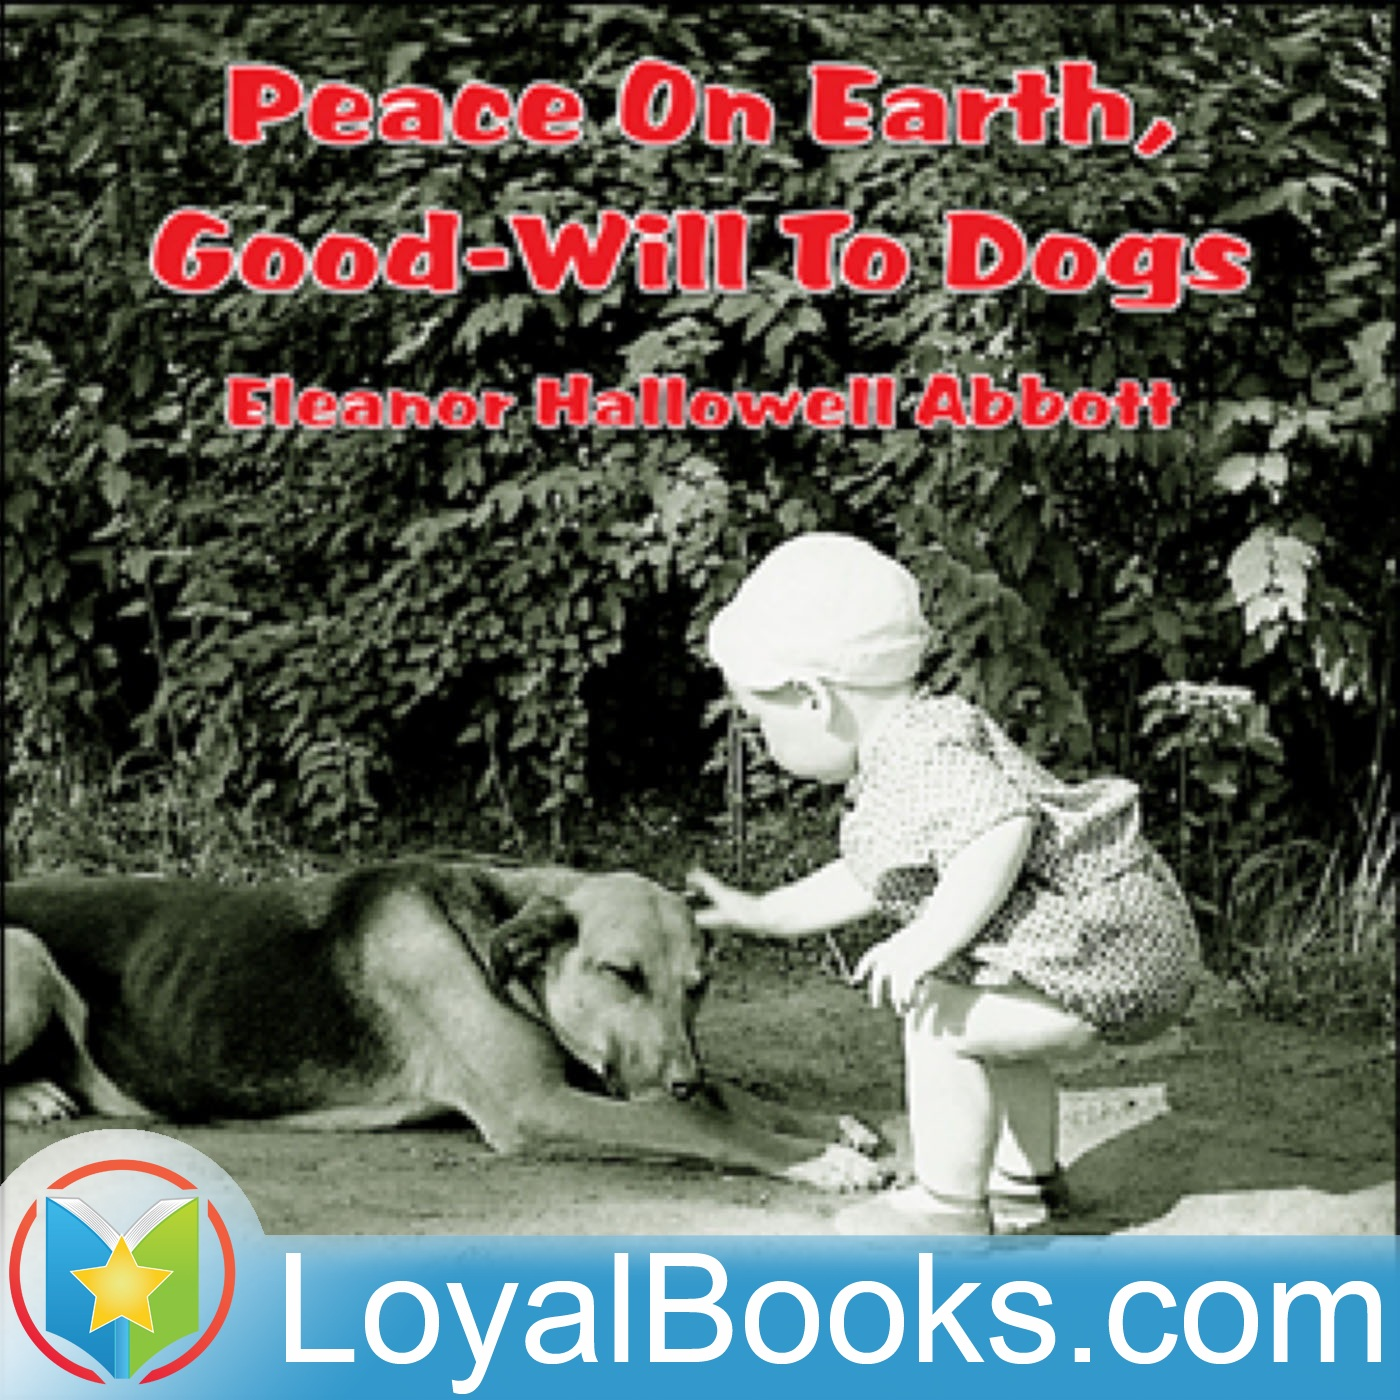 <![CDATA[Peace On Earth, Good-Will To Dogs by Eleanor Hallowell Abbott]]>